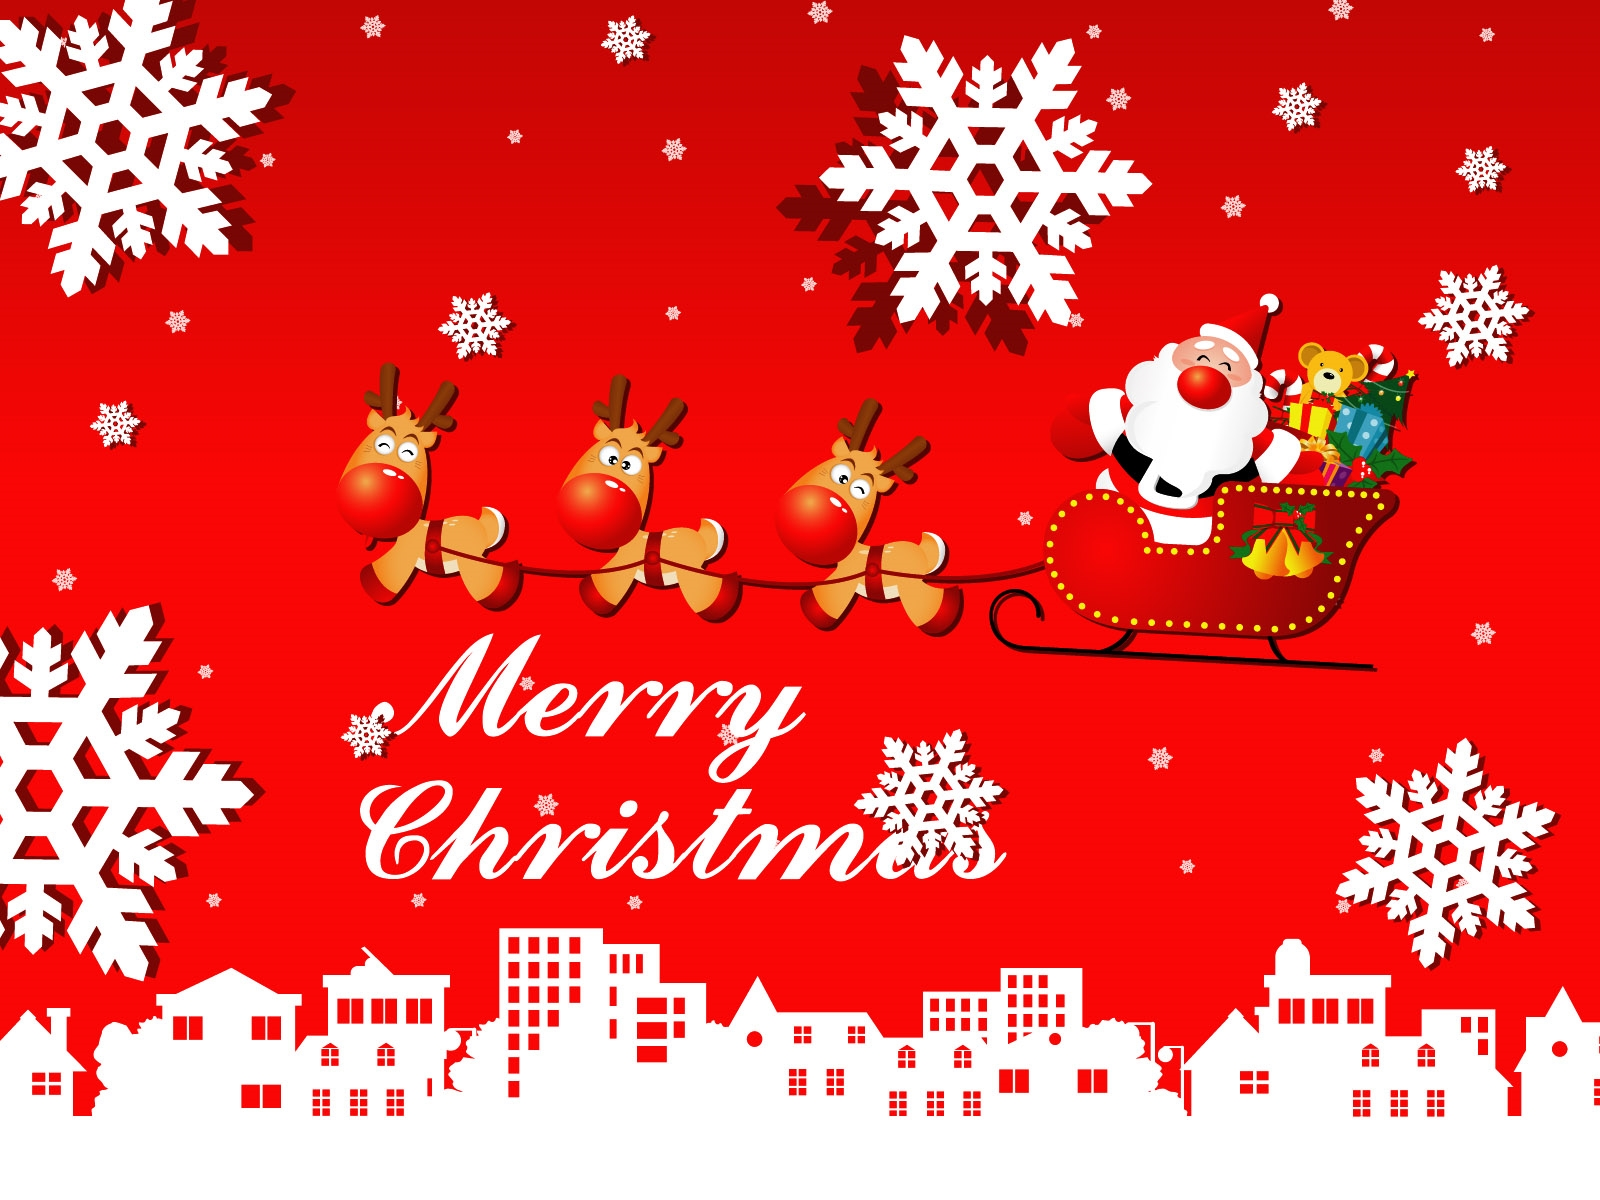 merry christmas and happy new year 2013 wallpapers hd. Black Bedroom Furniture Sets. Home Design Ideas